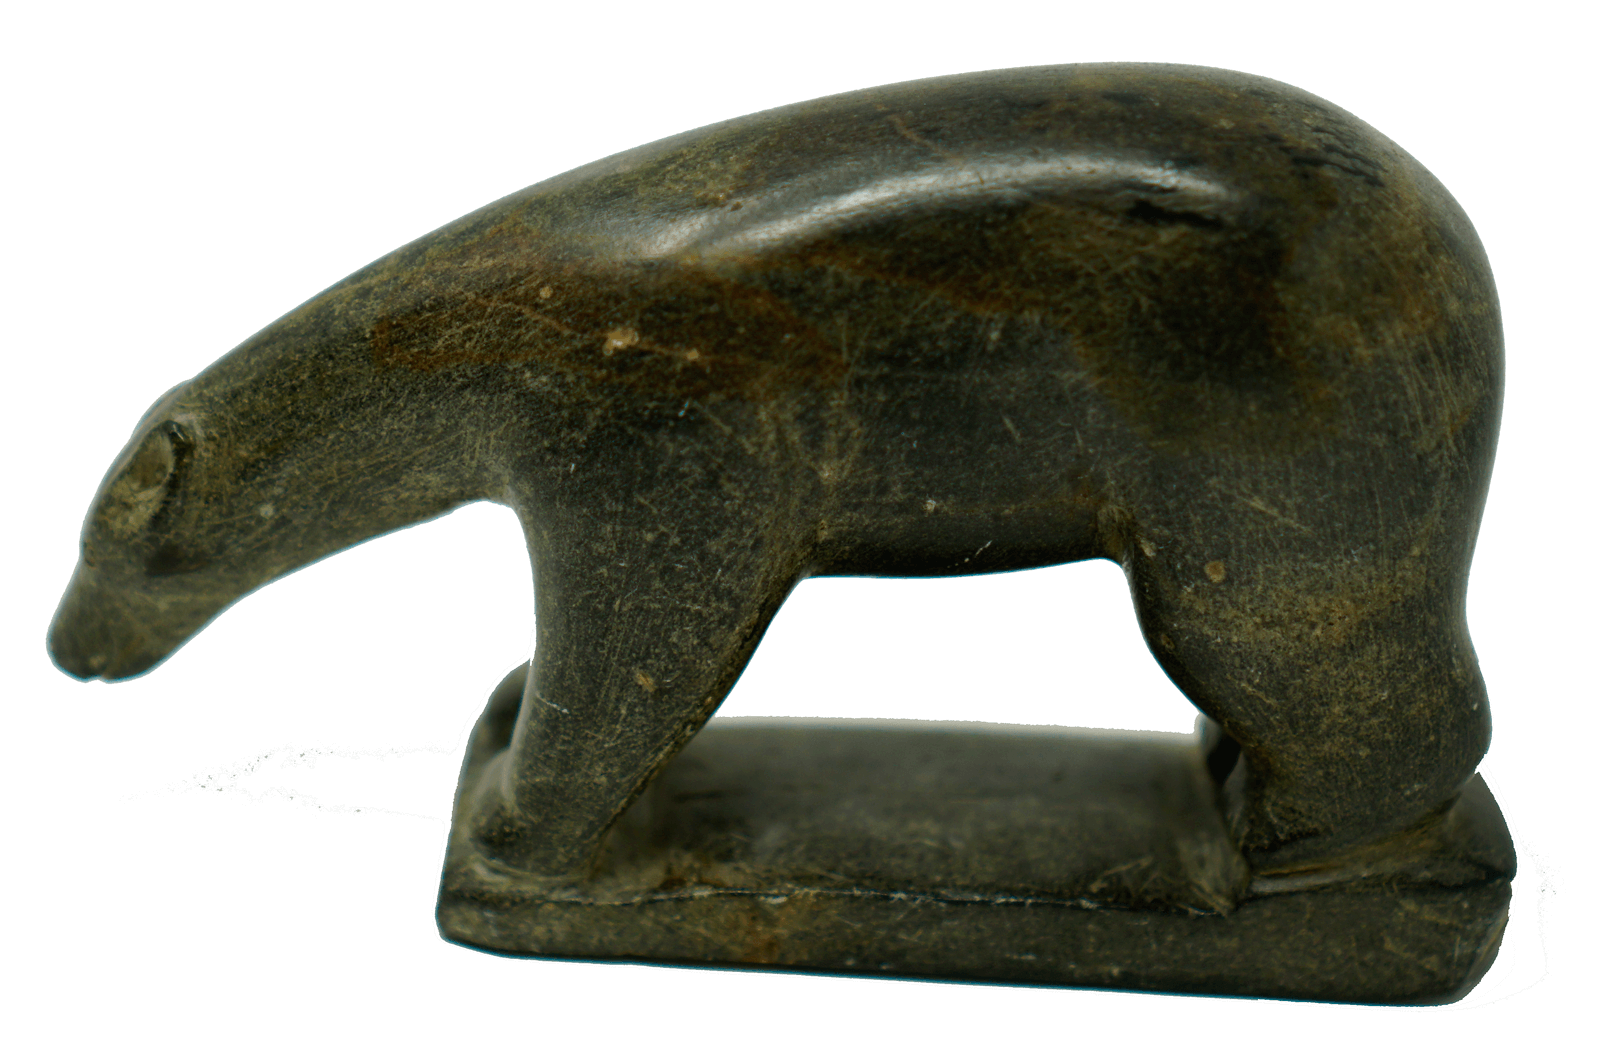 Inuit Soapstone Sculpture by David Isigaitok